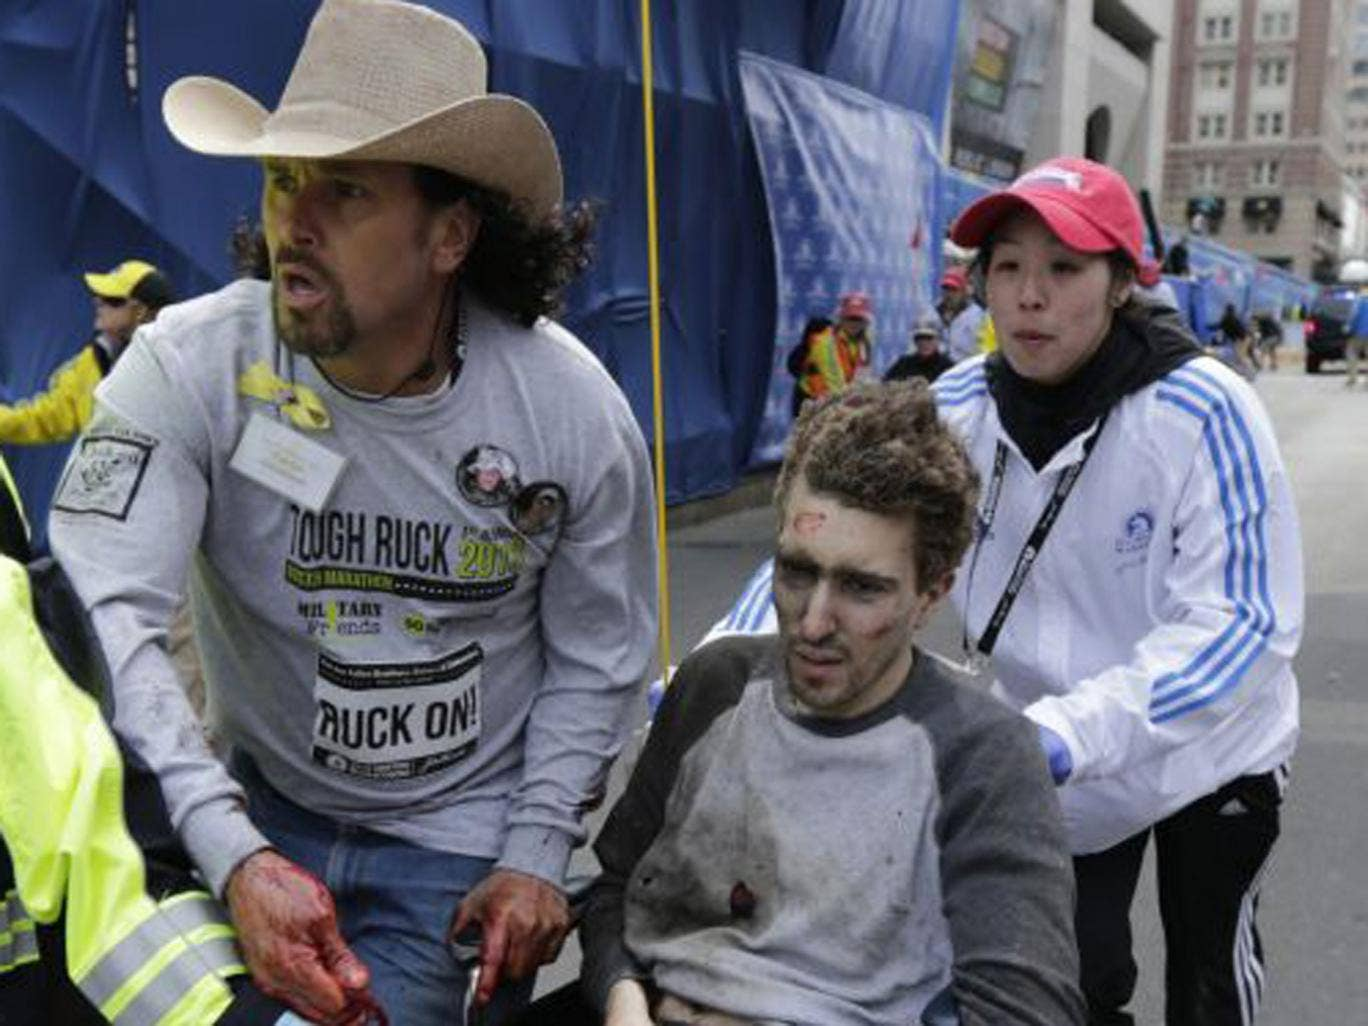 Jeff Bauman being helped from the carnage after the explosion